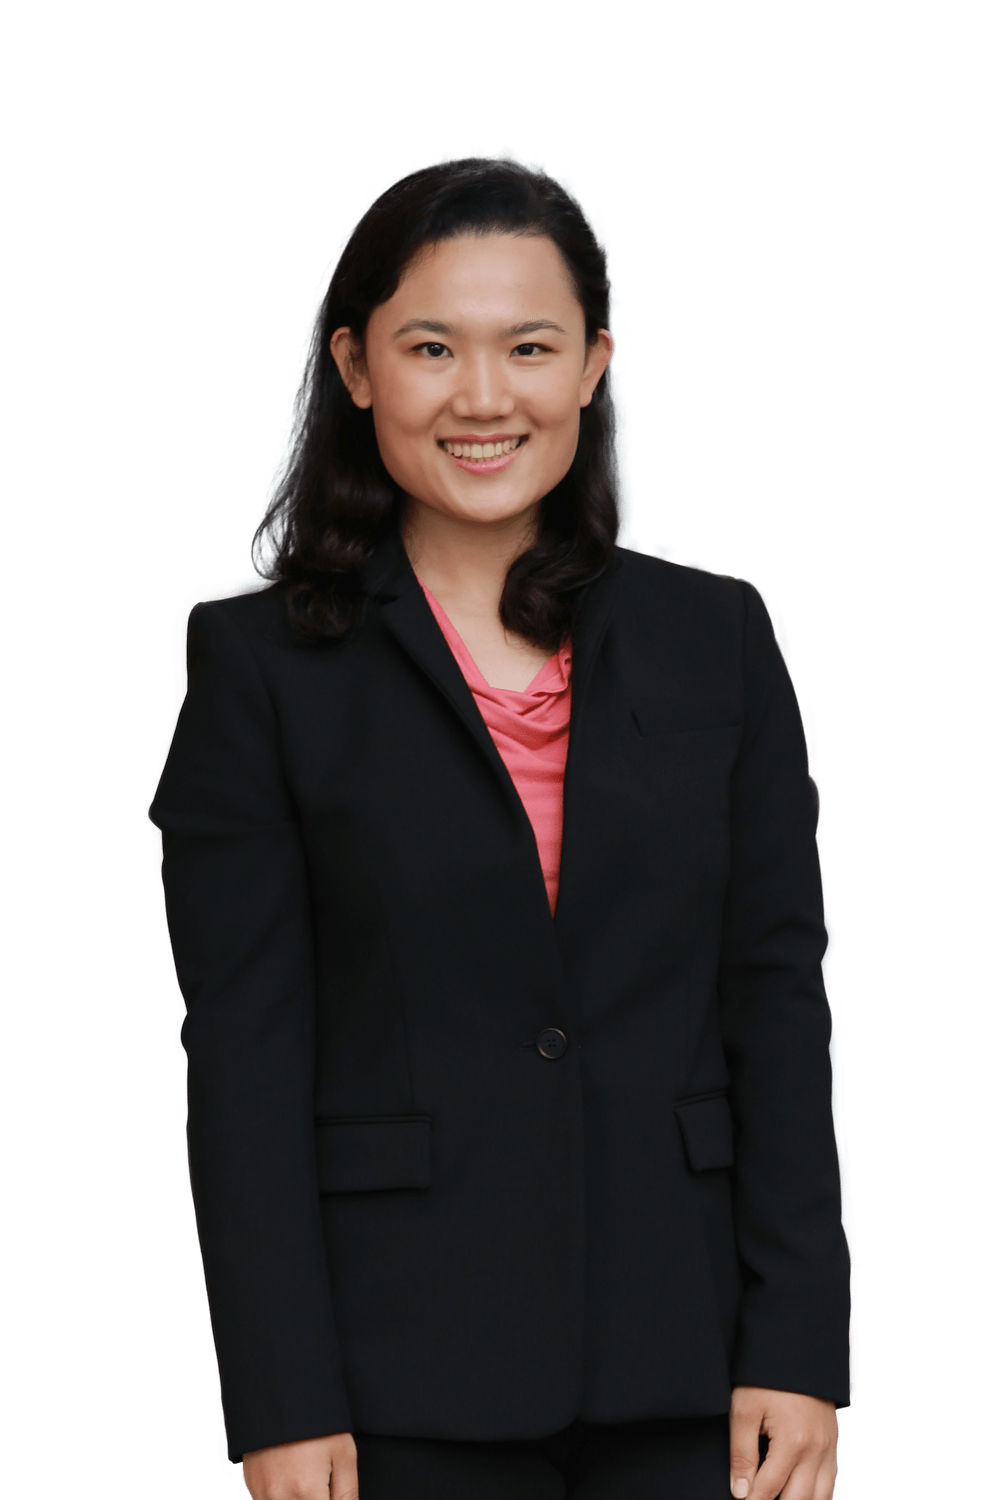 headshot of Catherine Lin, in dark business suit with pink shirt